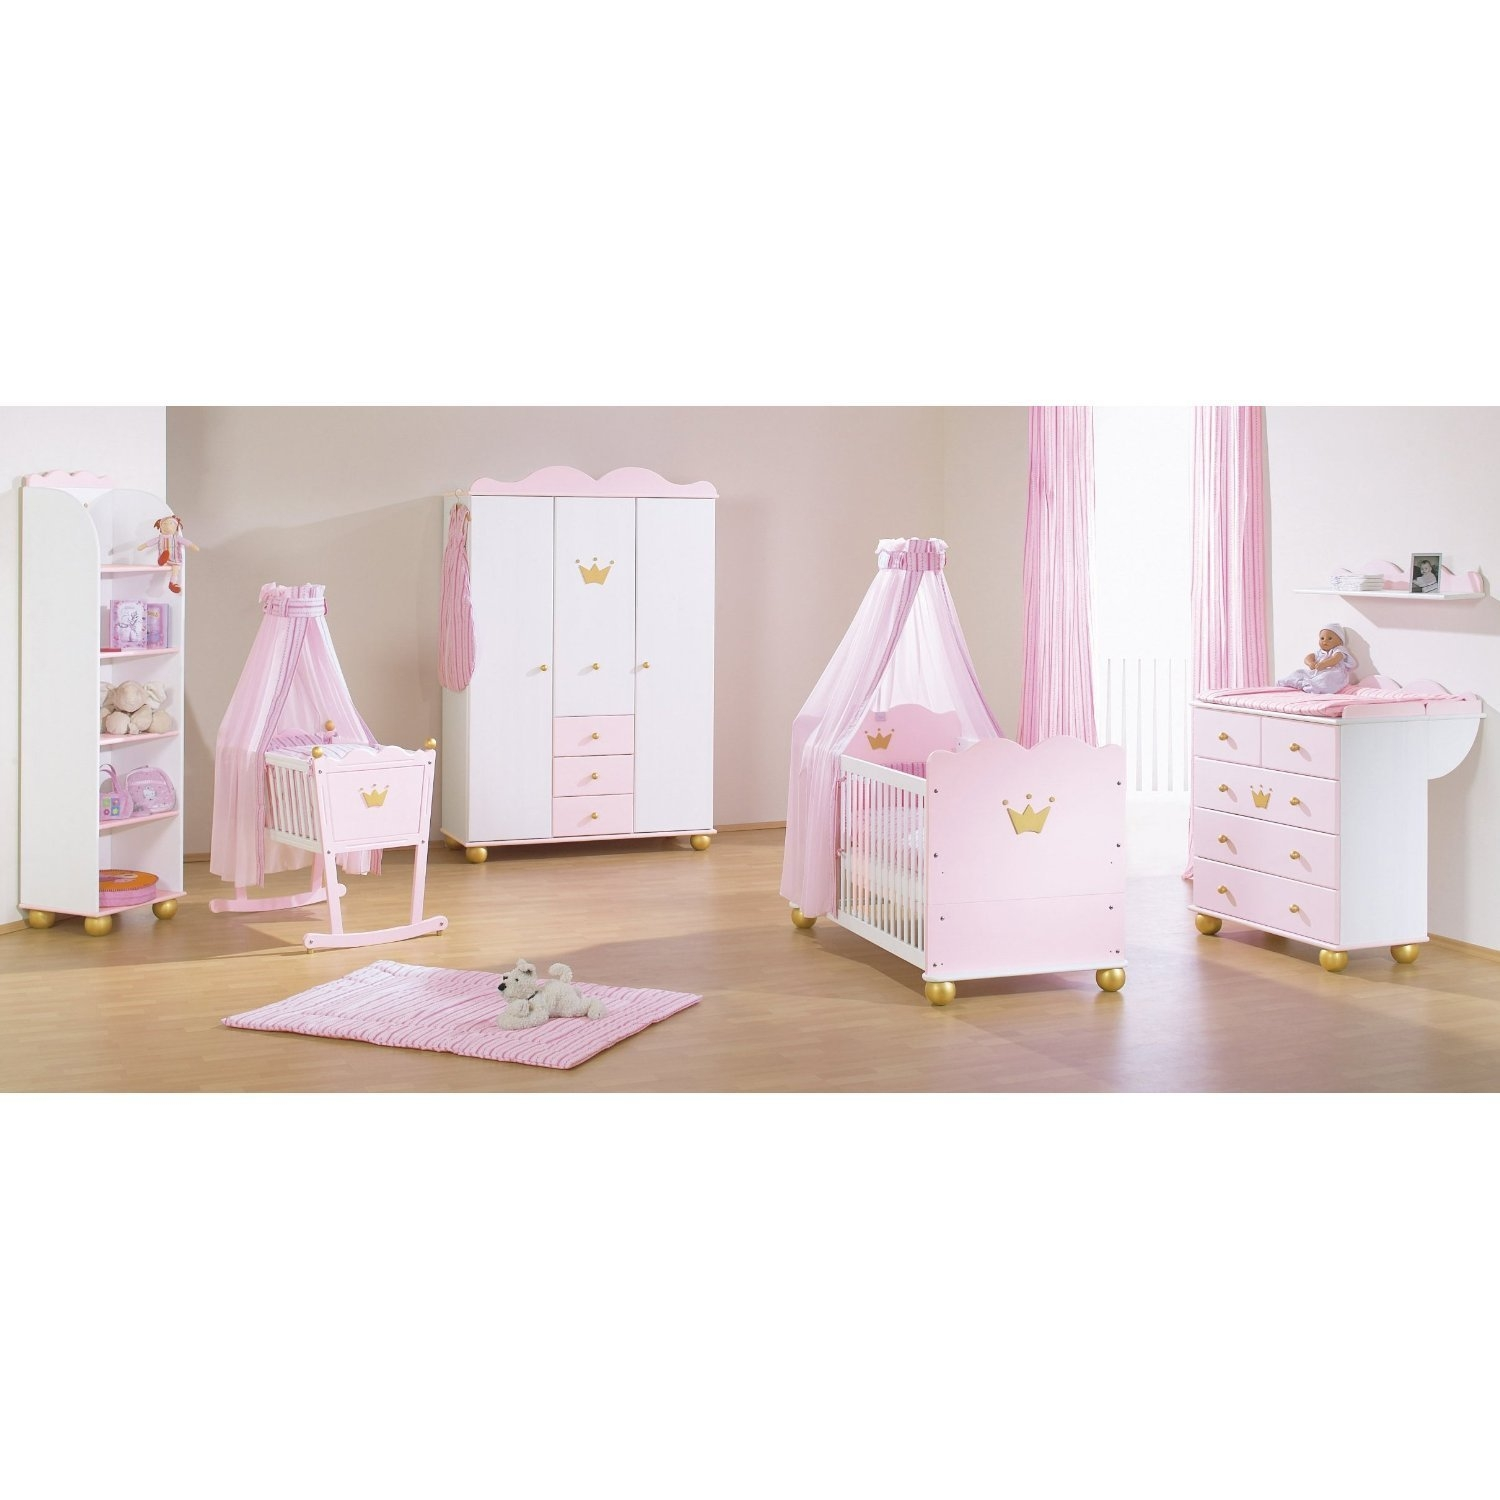 Chambre b b fille princesse caroline for Photo de chambre pour bebe fille